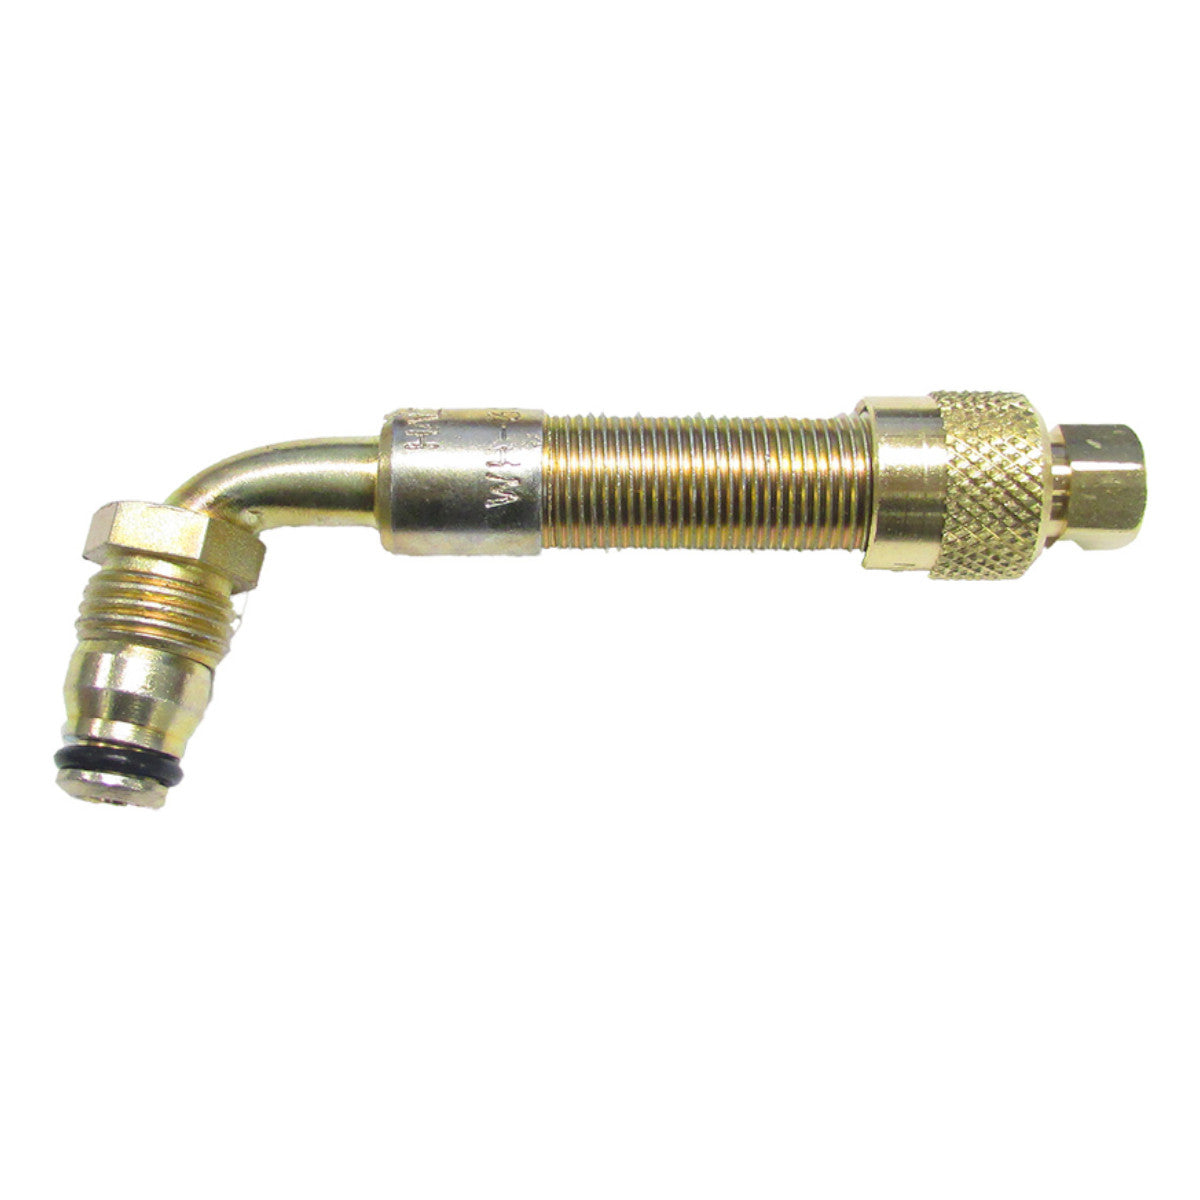 Haltec Swivel Valve Stem (WH-300-J-653)